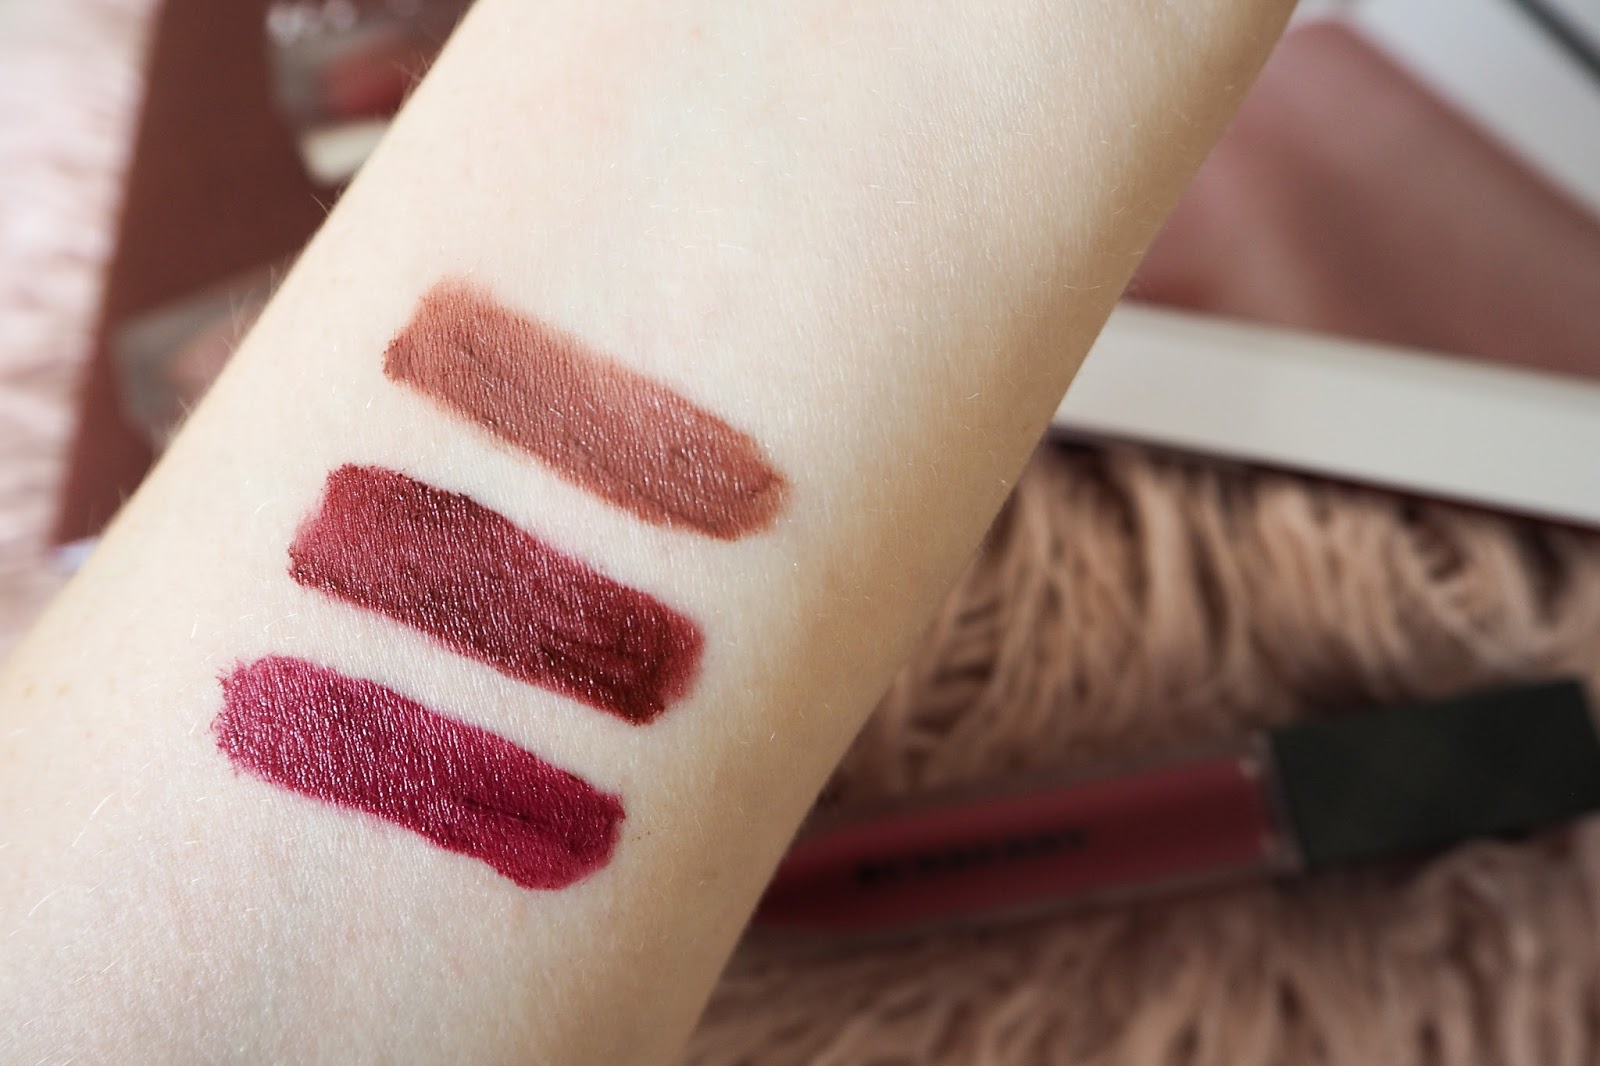 Burberry Lip Velvet Liquid Lipstick Review and Swatches - Fawn, Bright Plum and Oxblood